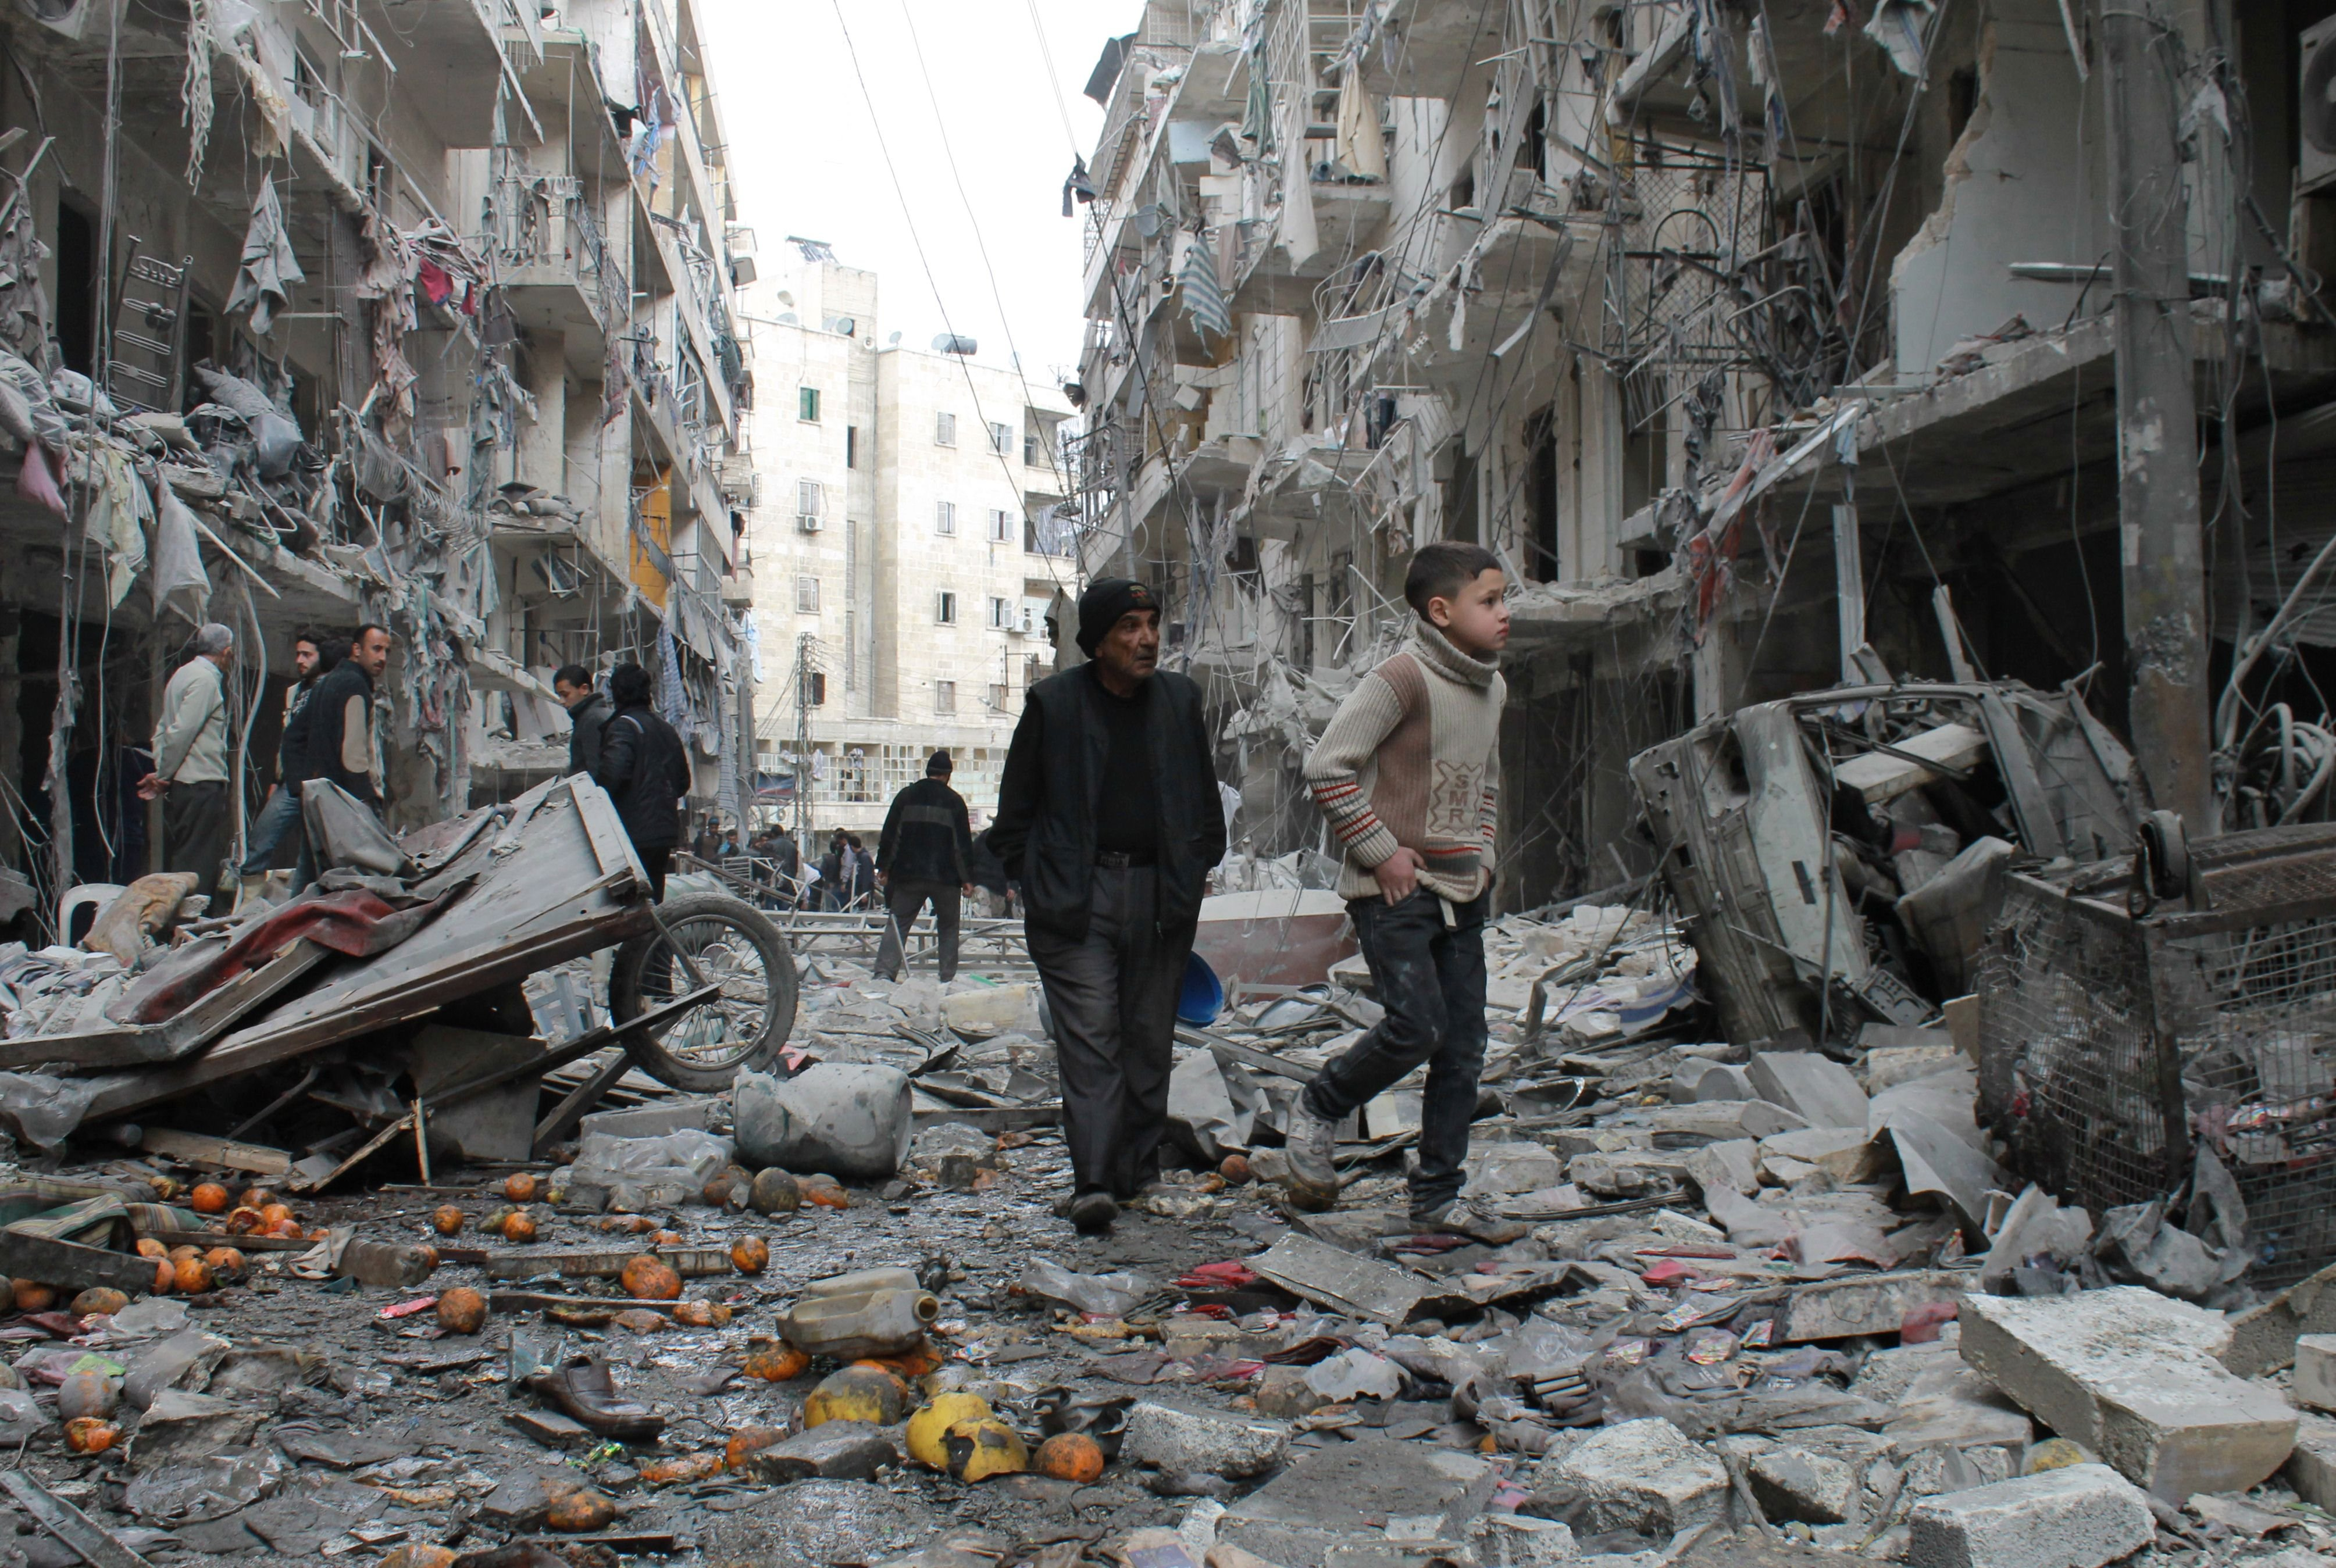 An elderly Syrian man and a child walk amidst debris in a residential block reportedly hit by an explosives-filled barrel dropped by a government forces helicopter on March 18, 2014 in Aleppo.